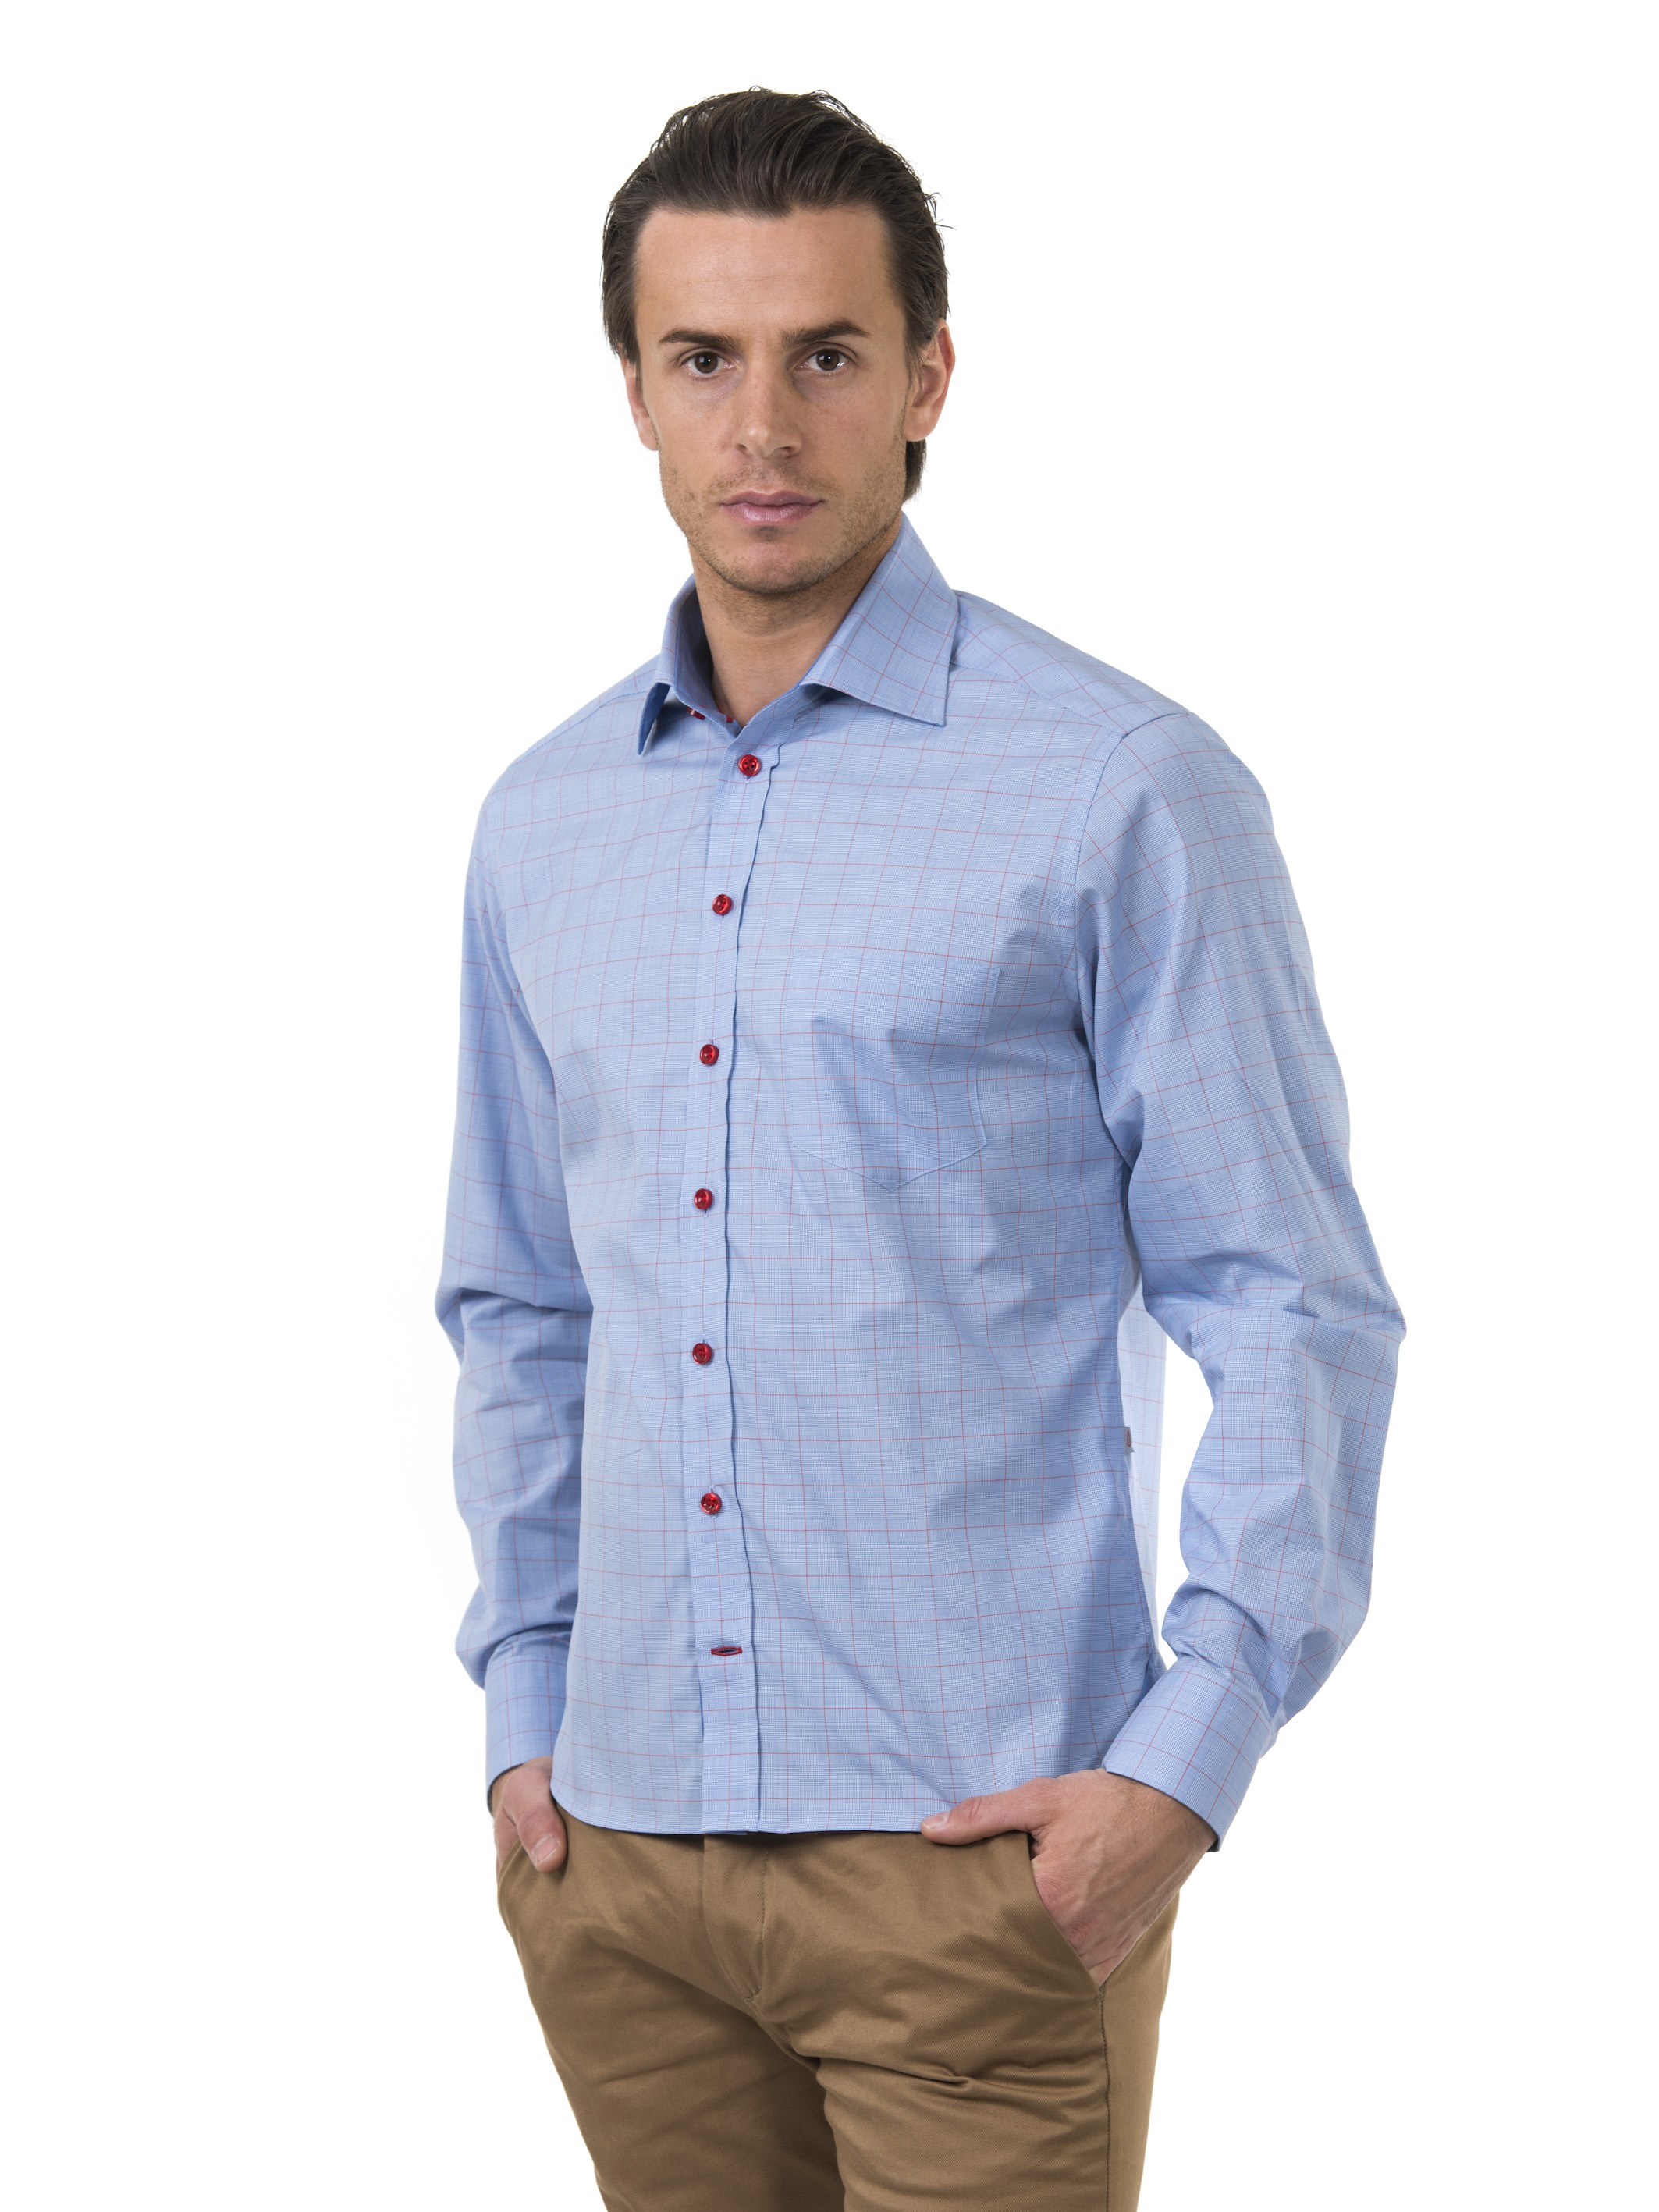 Profilskjorta Ljungström Blue Checkered Leisure Slim fit i  Medium